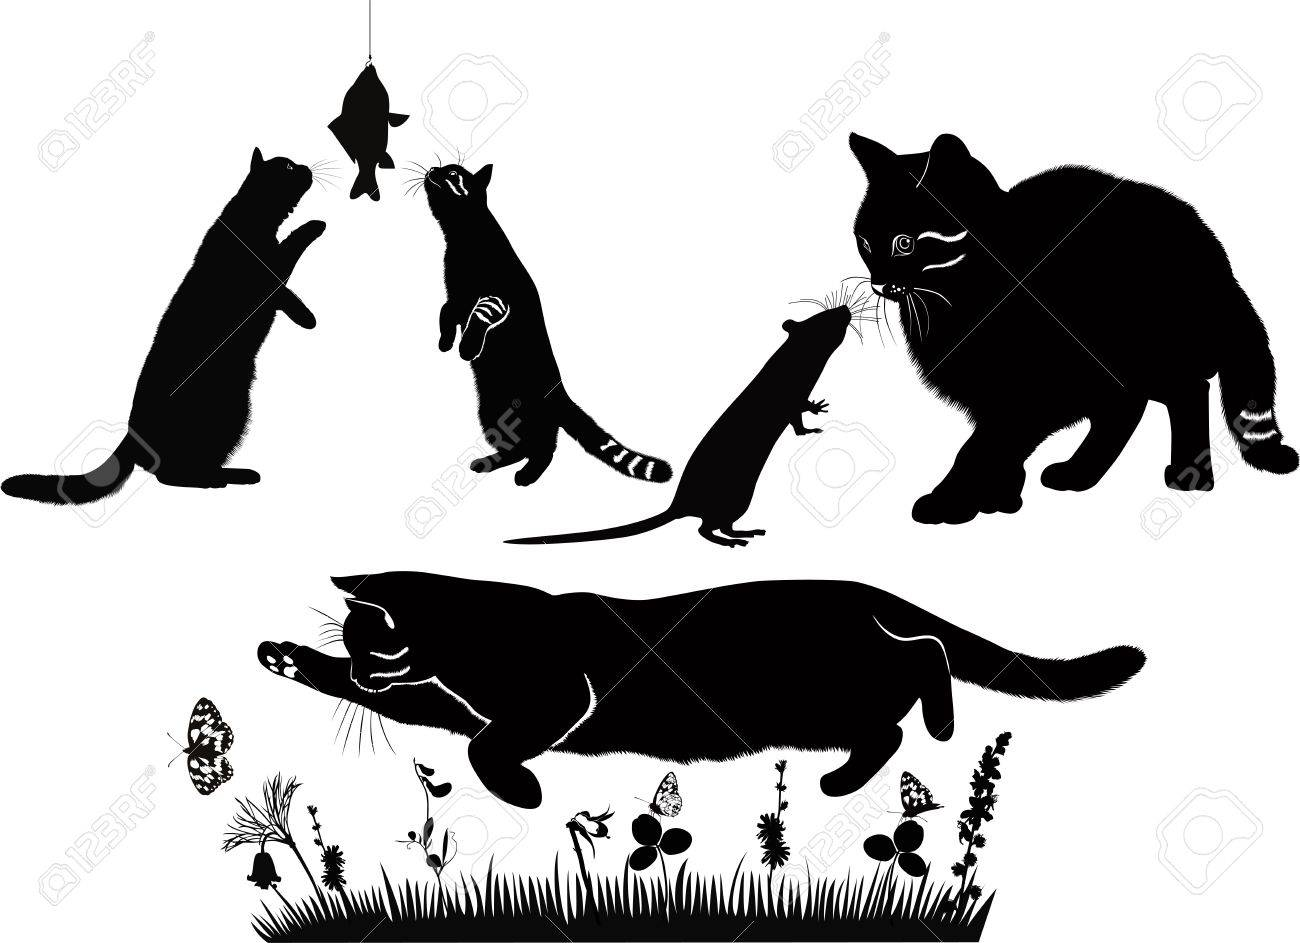 cats are and mouse, fish, butterflies compositions animals isolated on a white background Stock Vector - 19478126